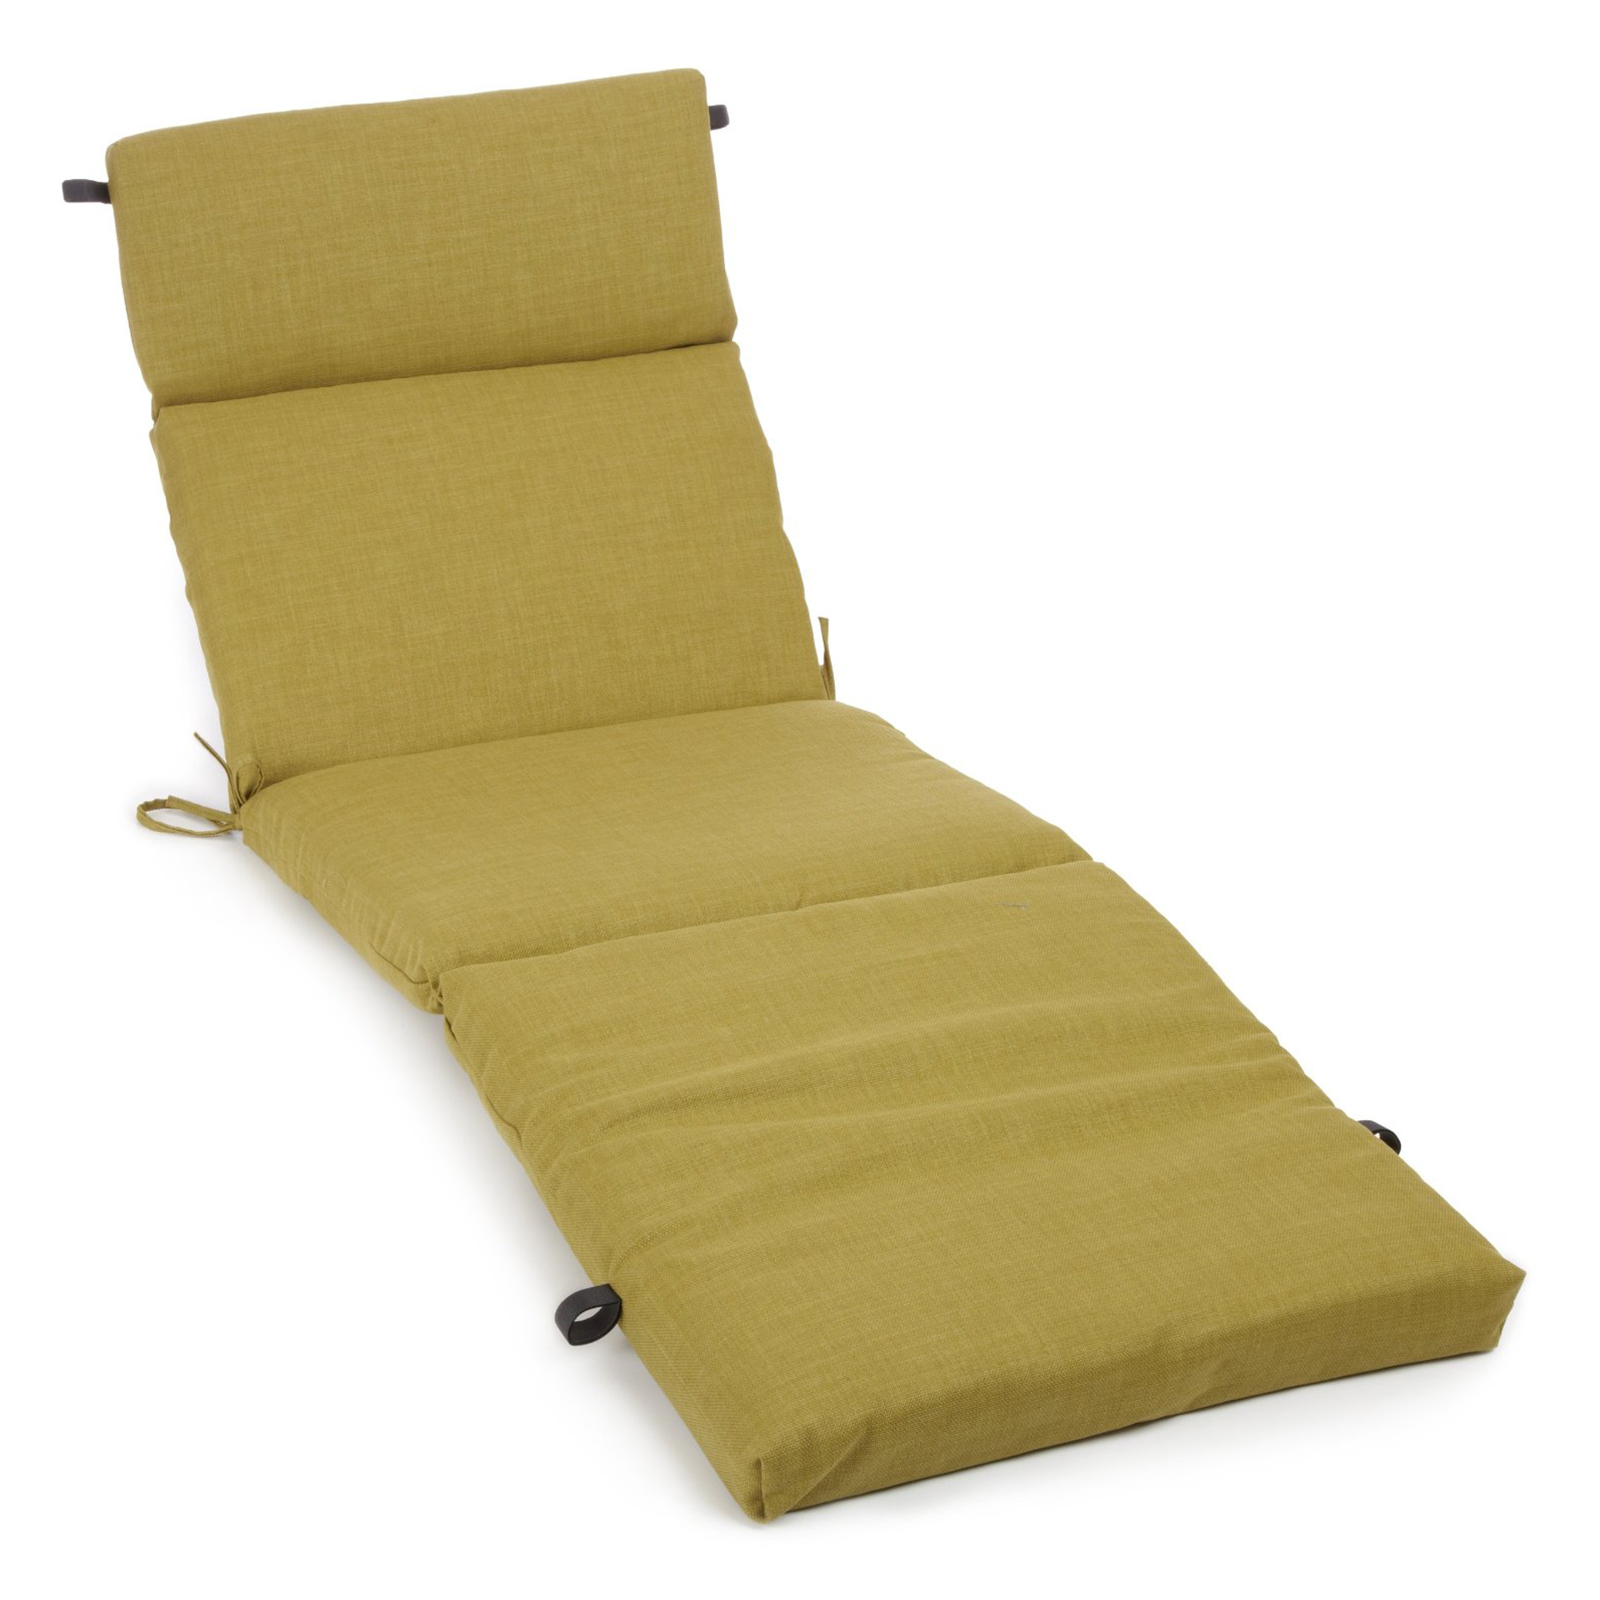 Outdoor Chaise Lounge Cushion   Outdoor Cushions At Hayneedle